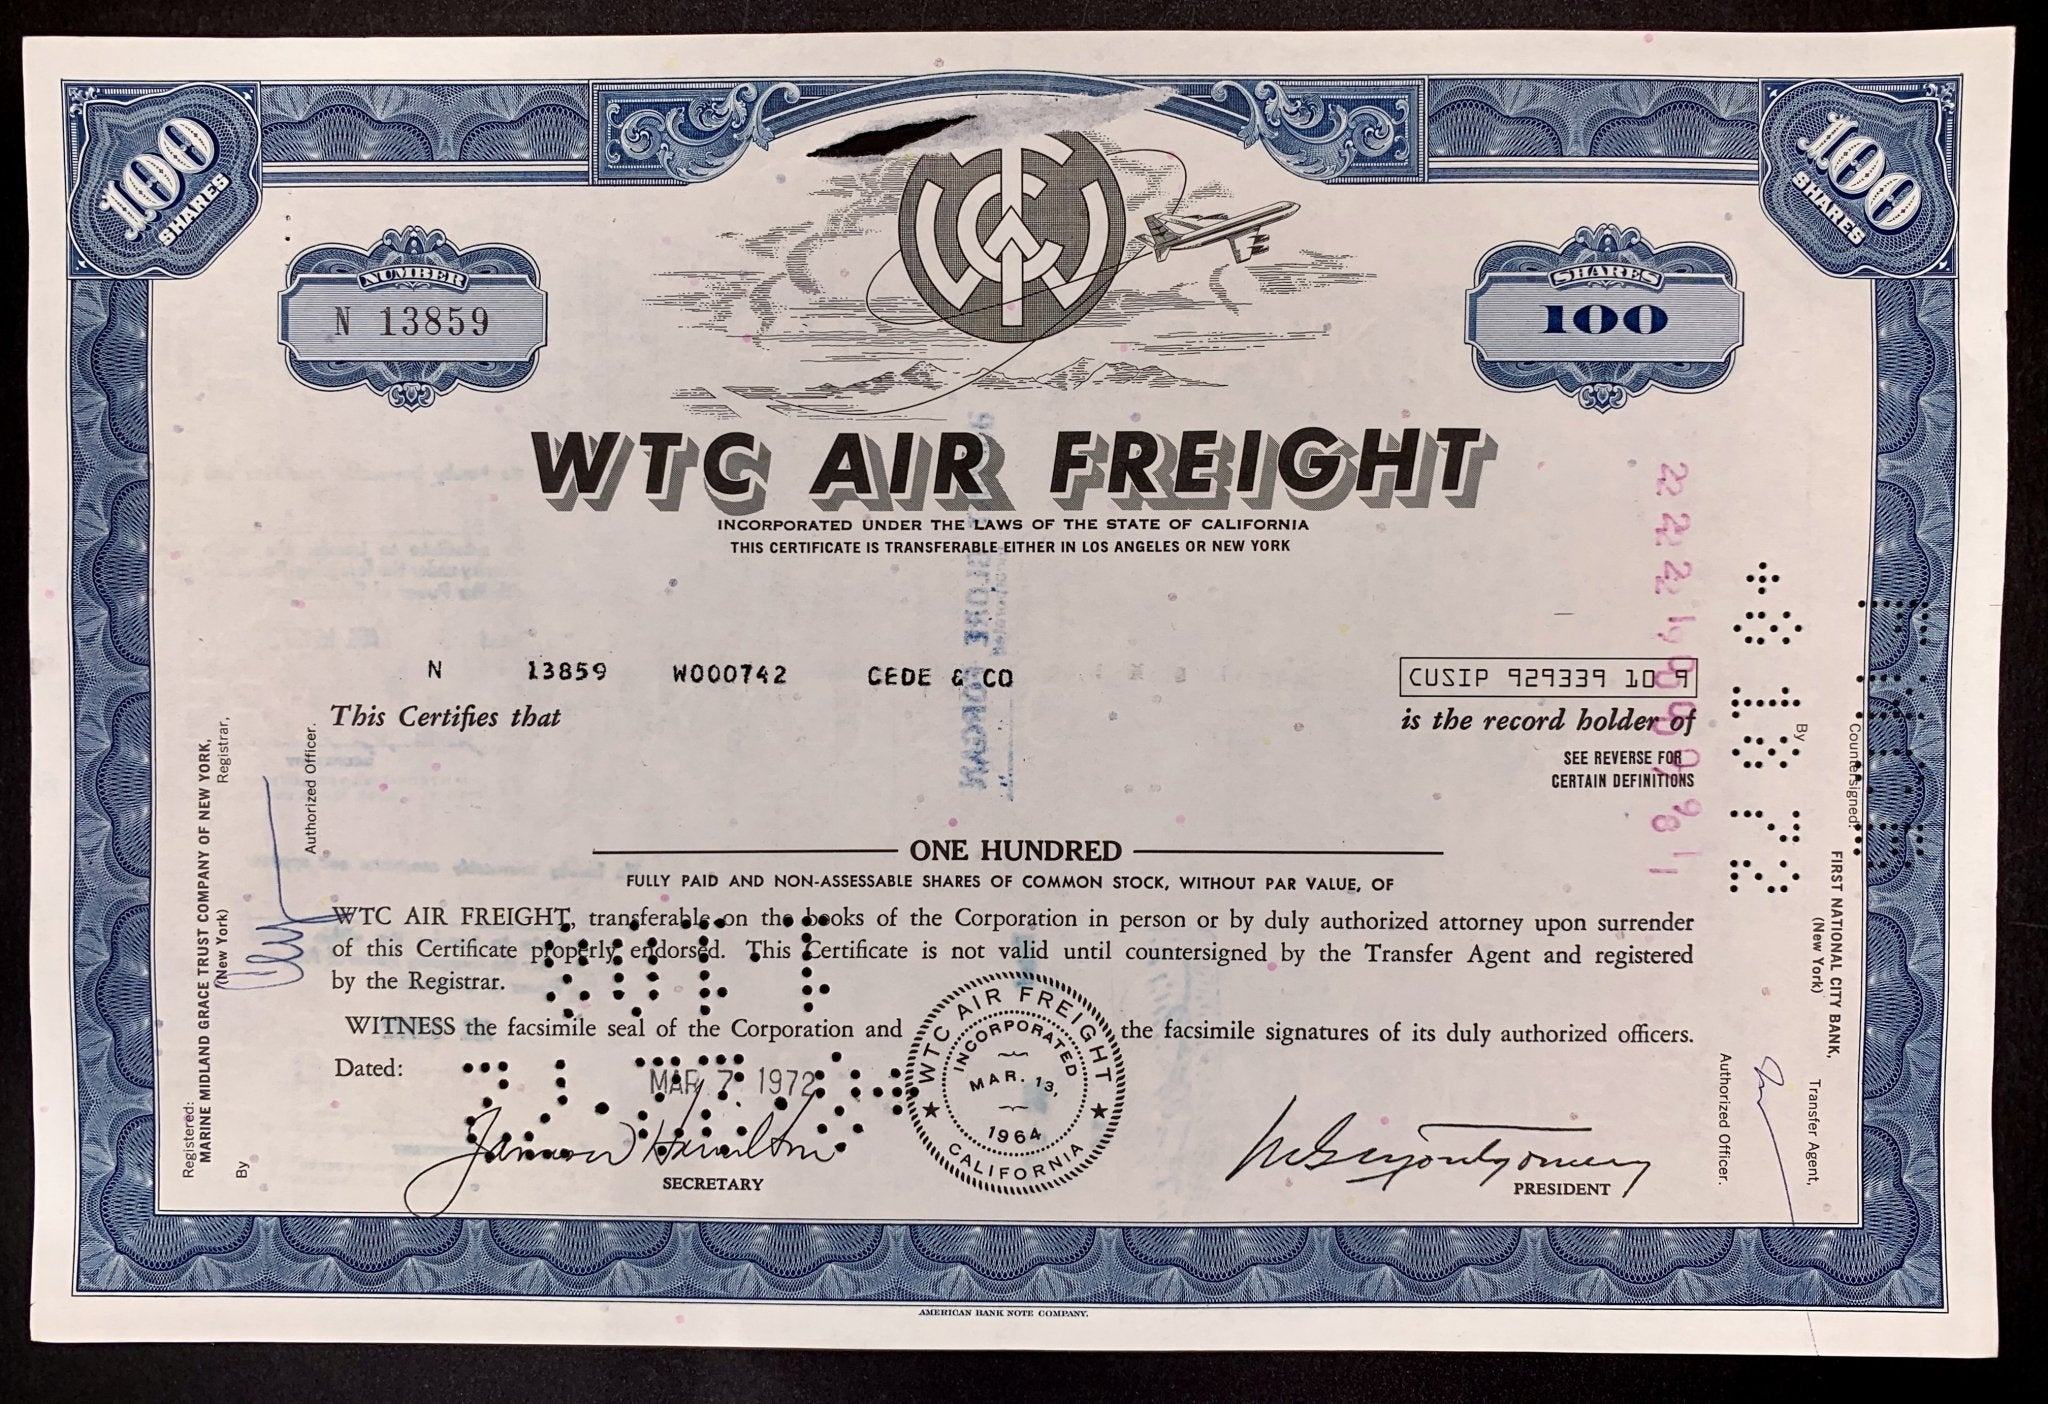 Aandeel WTC Air Freight Company - 1972 - World of Maps & Travel